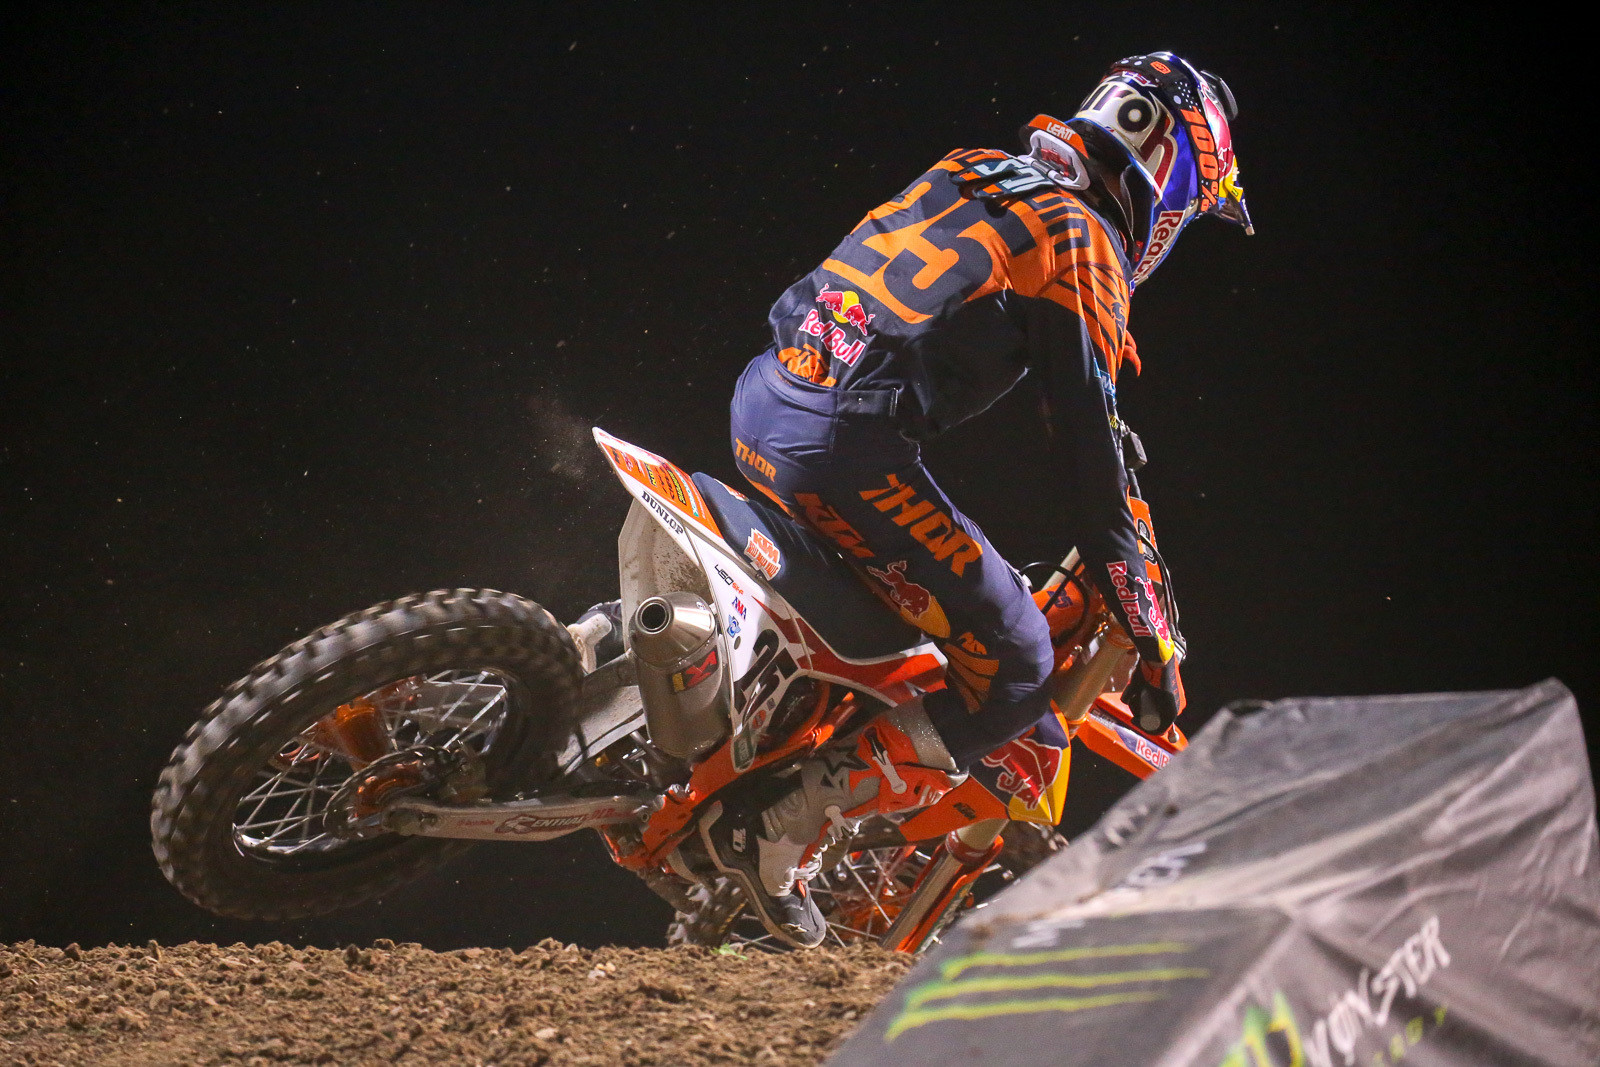 Marvin Musquin to Miss 2020 AMA Supercross Championship